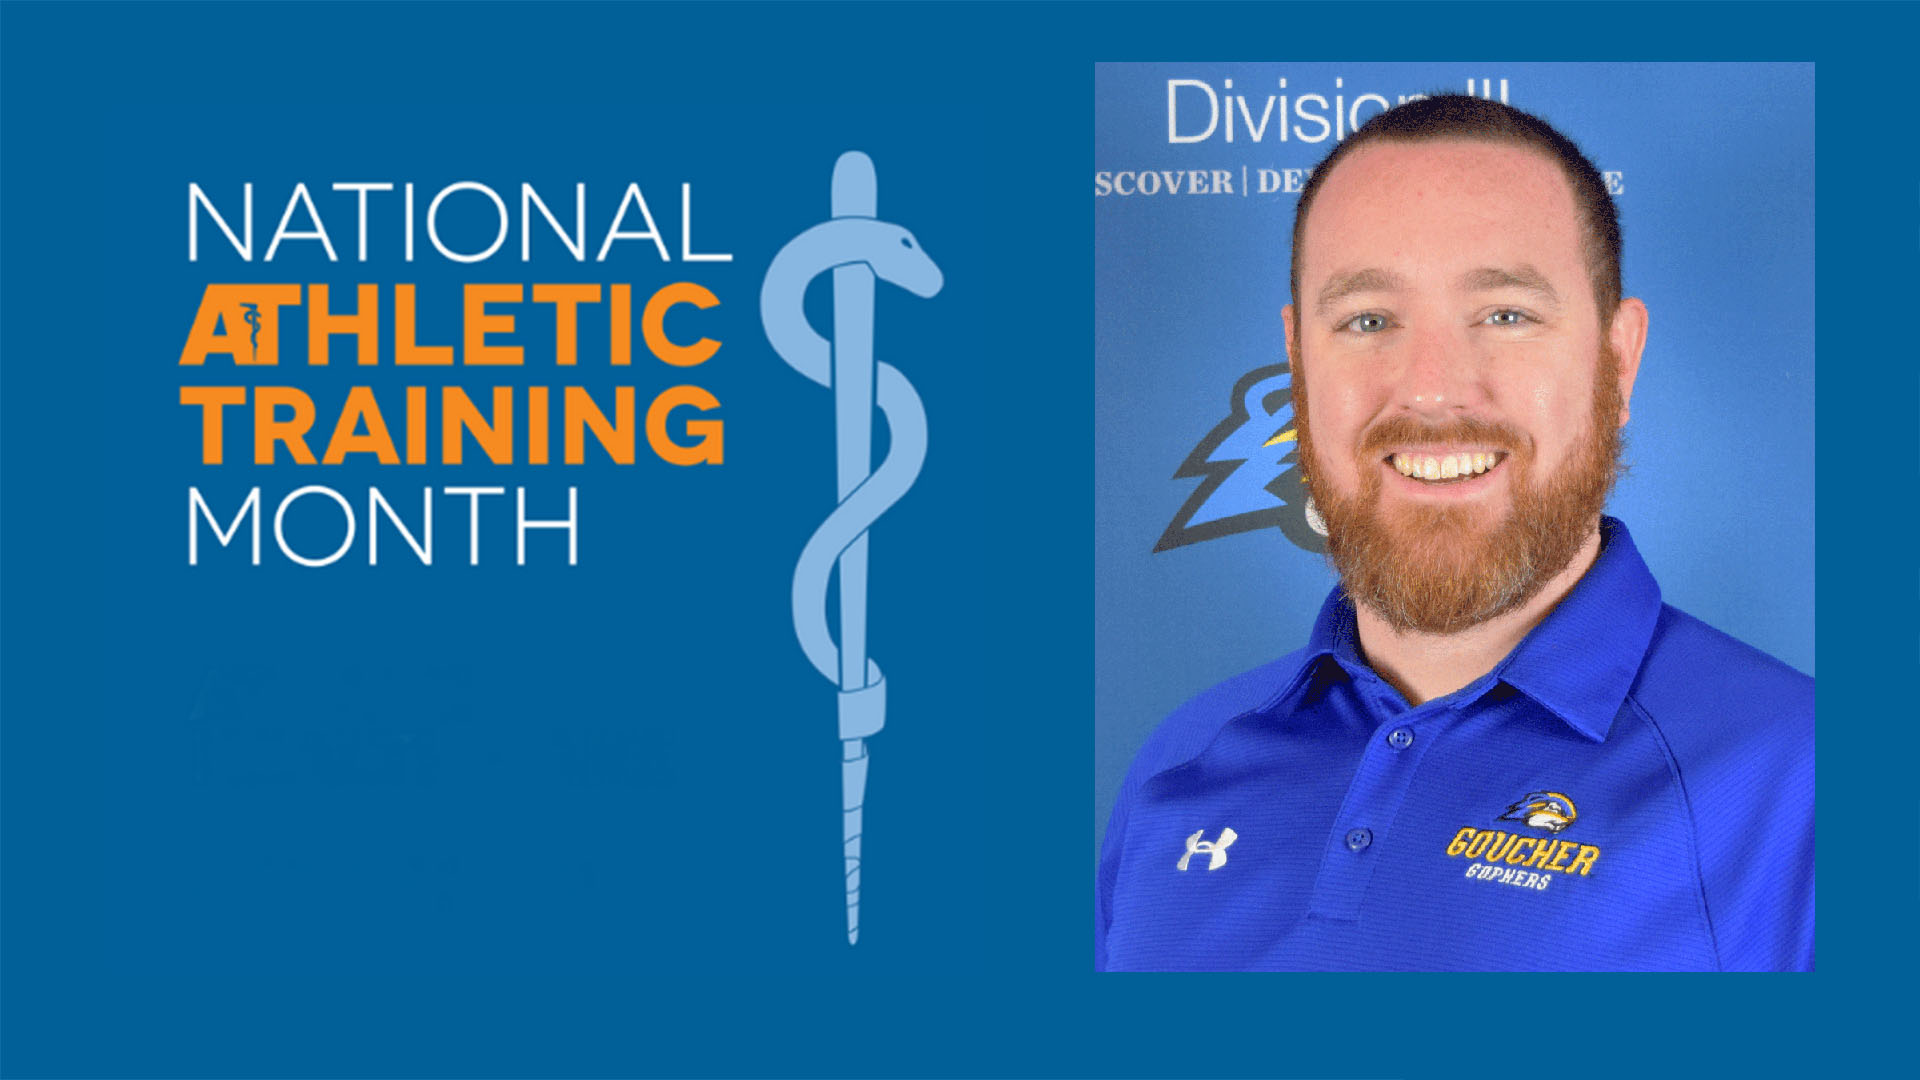 National Athletic Training Month Spotlight at Goucher: Conor Trainer